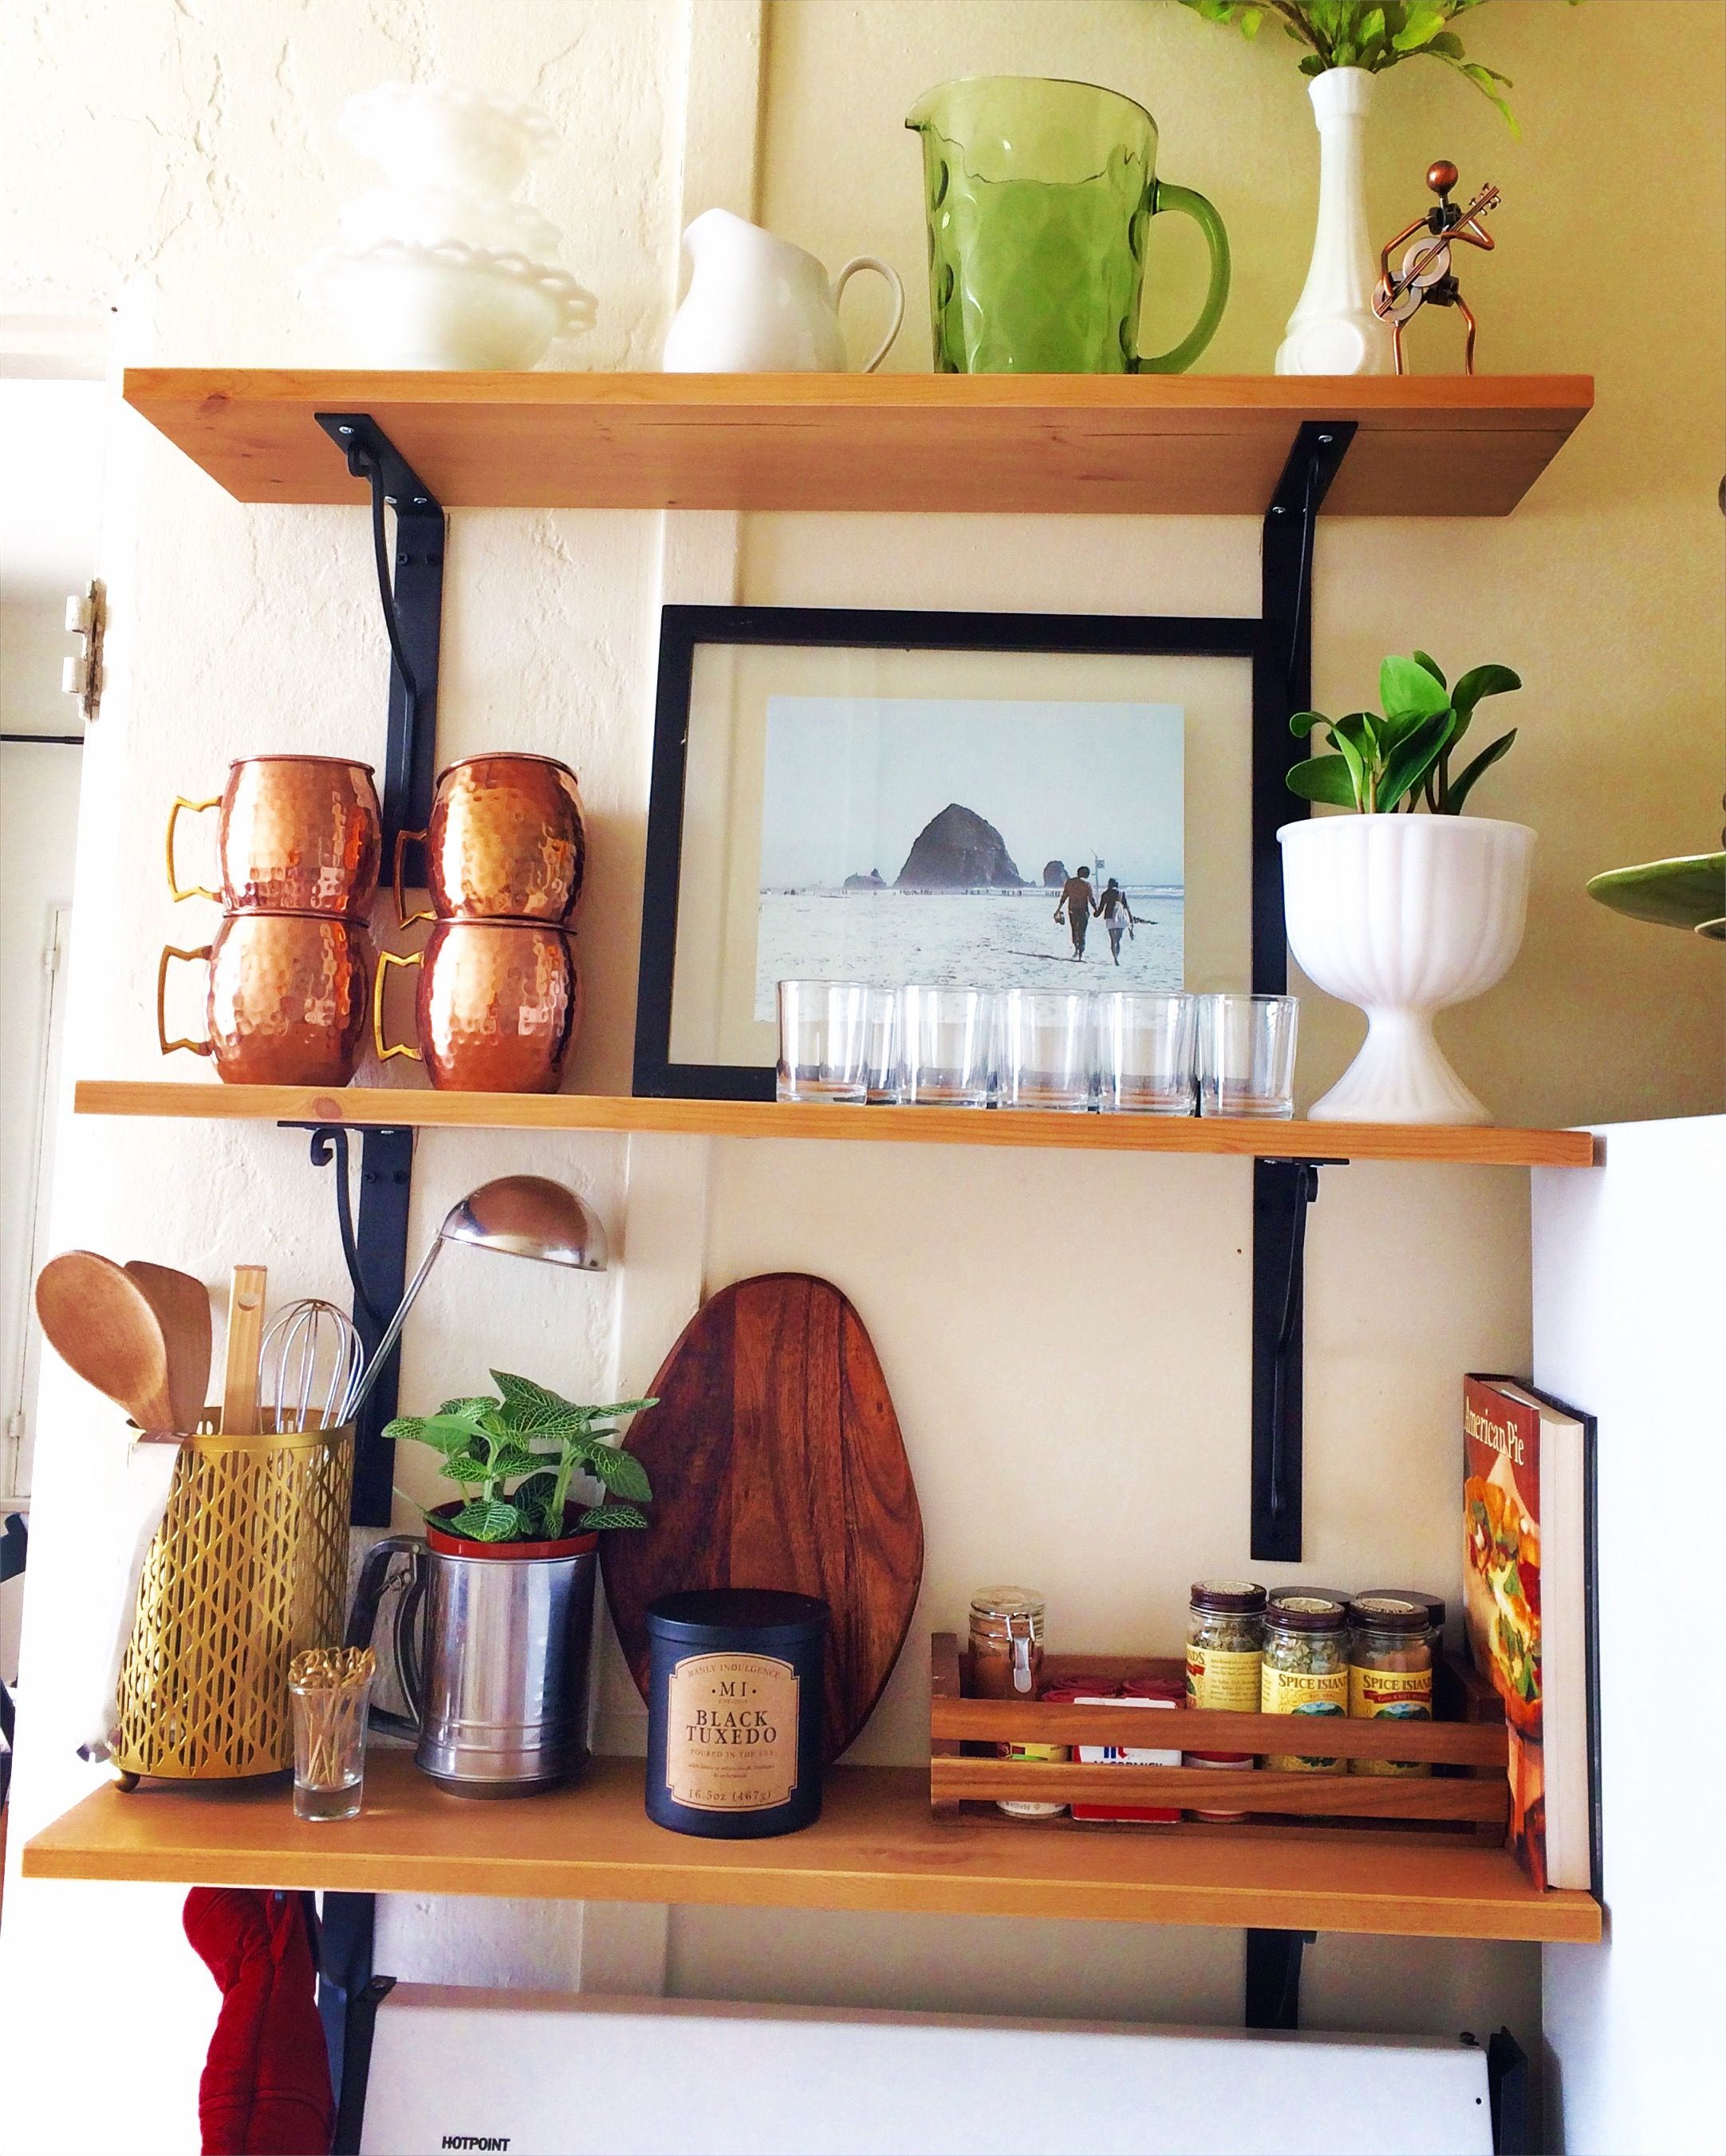 kitchen shelves shelves kitchen shelves floating shelves on kitchen floating shelves id=14129